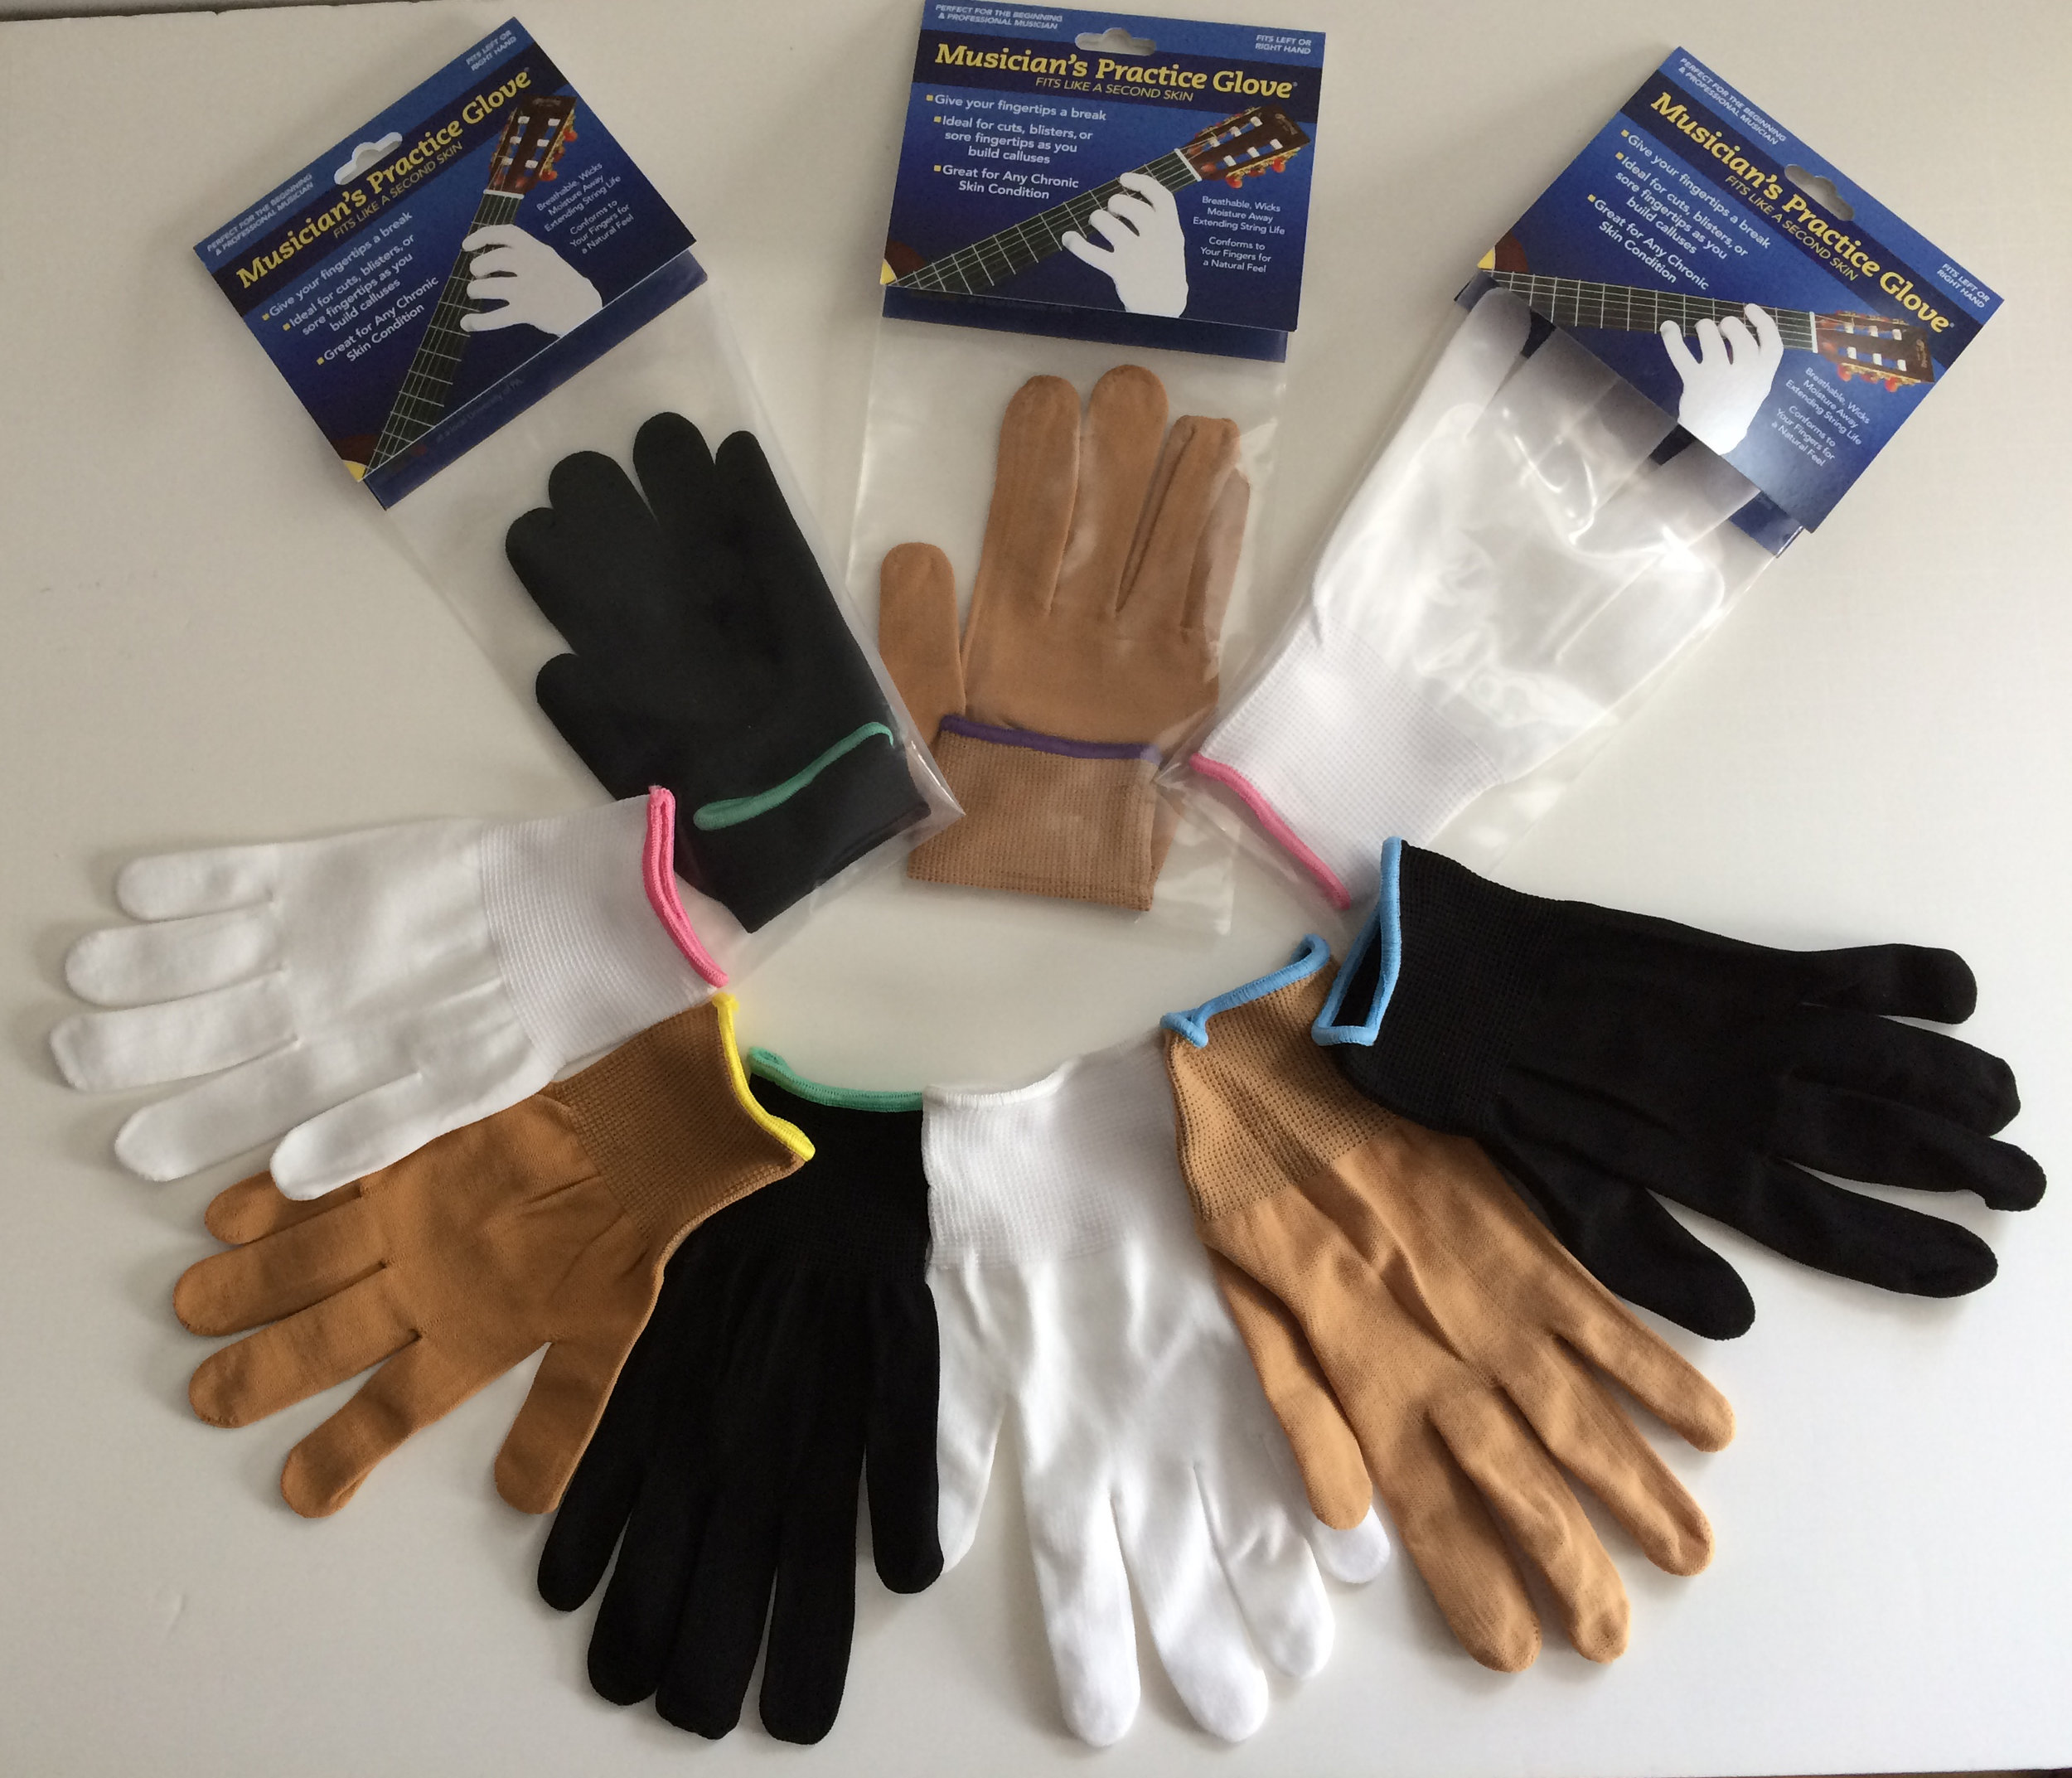 Fingerless gloves for musicians - From 6 49 W Free Shipping Shop Now 717 413 3265 Musician S Practice Glove